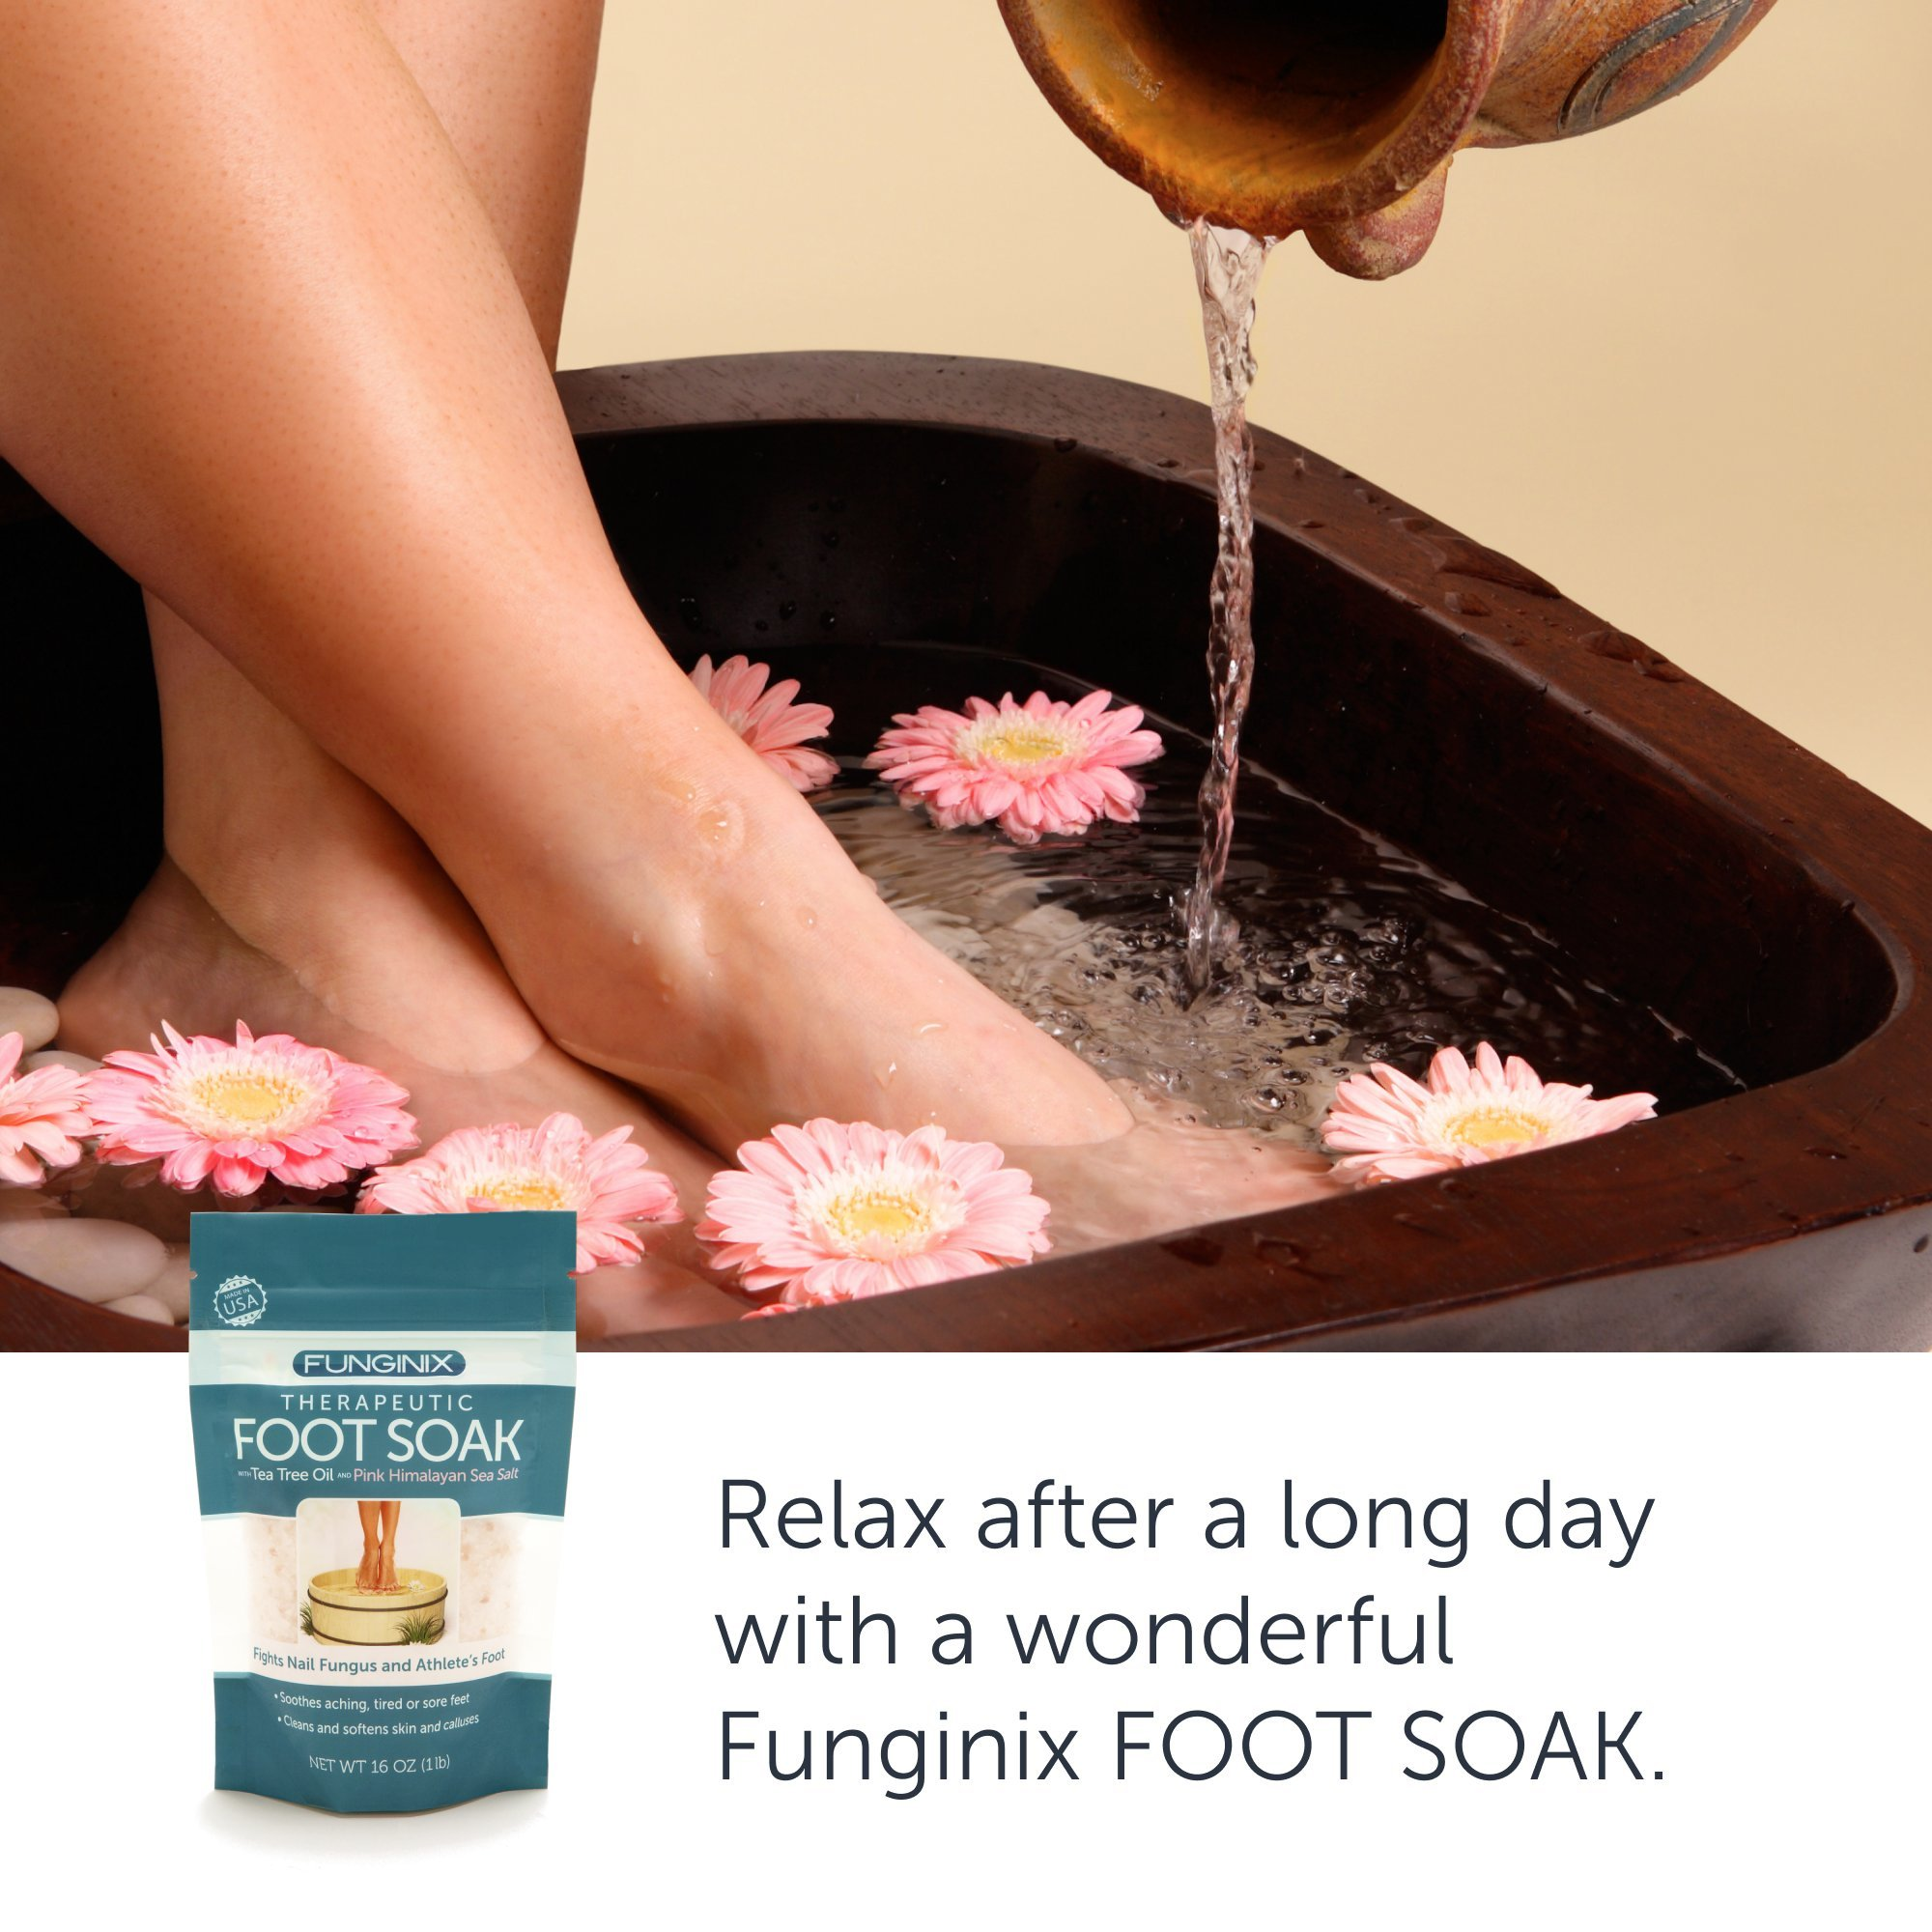 Funginix Premium Anti Fungal Foot Soak Nail Fungus Treatment with Tea Tree Oil, Himalayan Sea Salt, and Essential Oils - Treats Toenail Fungus, Athletes Foot, and Foot Odor - Foot Care for Sore Feet by Funginix (Image #6)